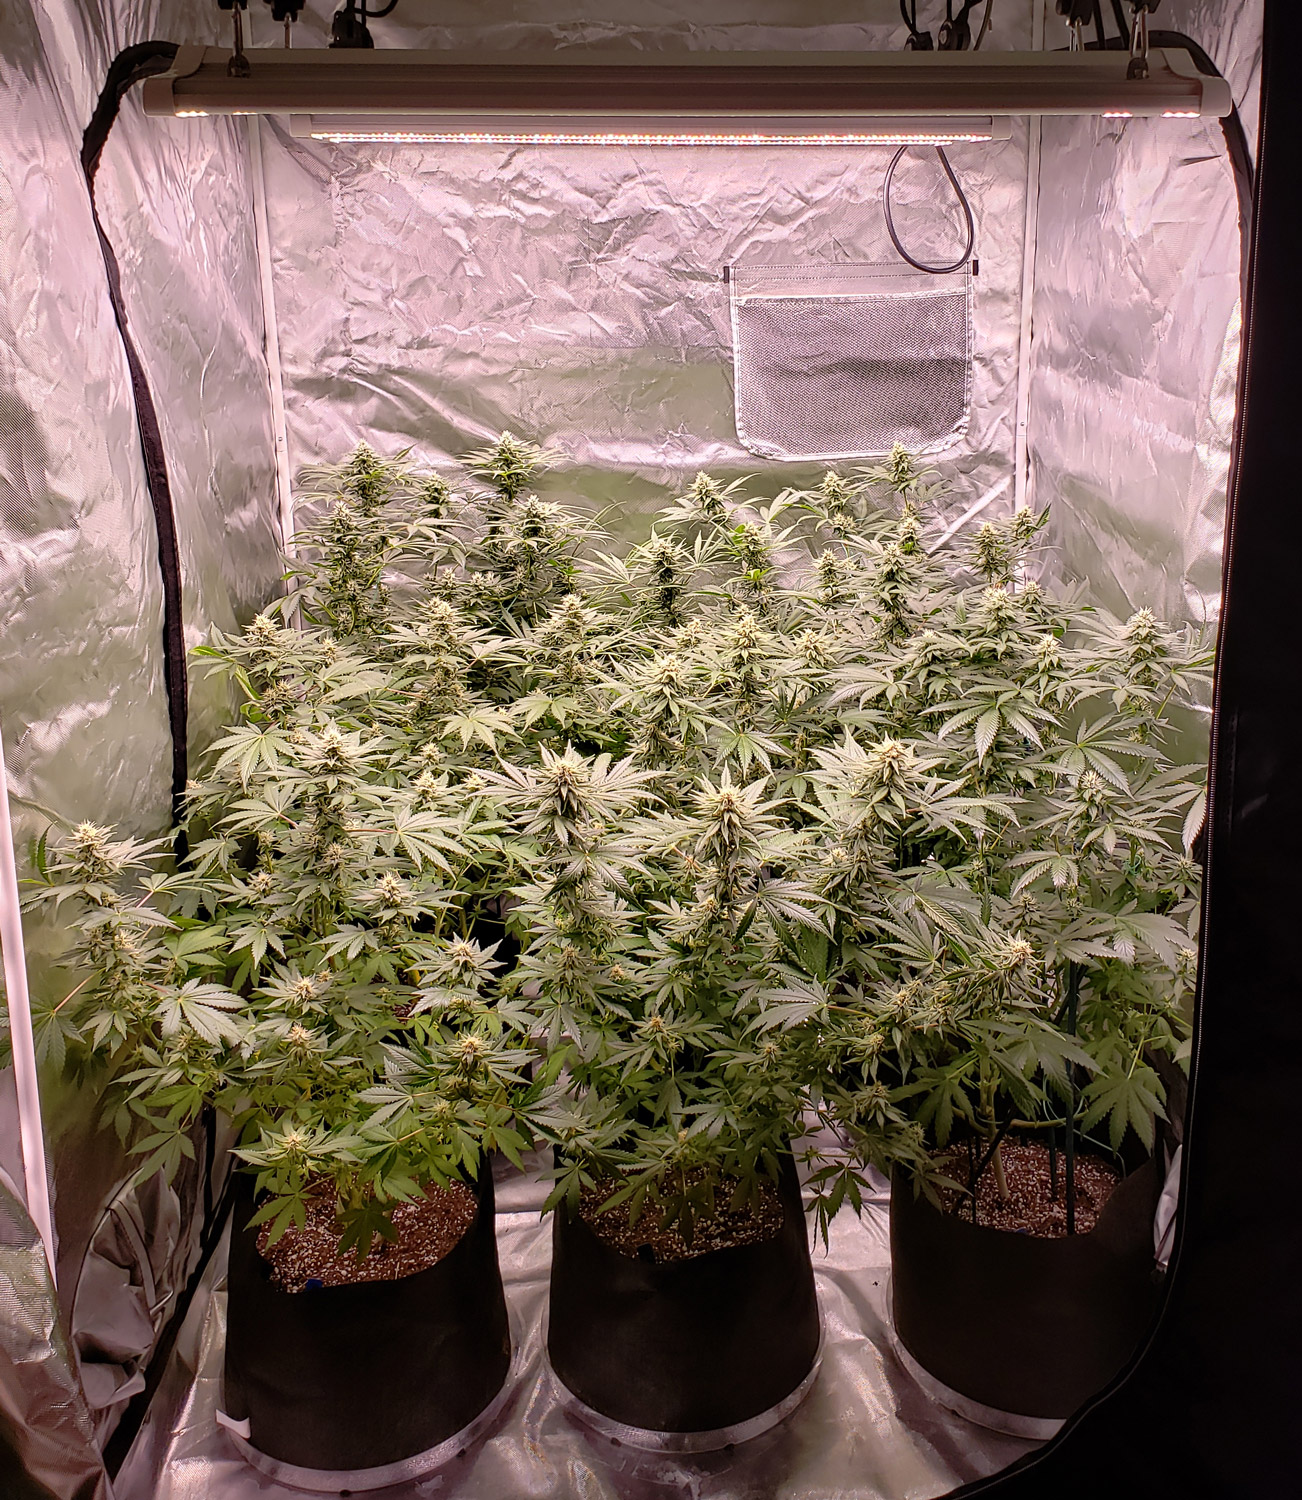 Harvest Over a Pound in a Large Grow Tent | Grow Weed Easy